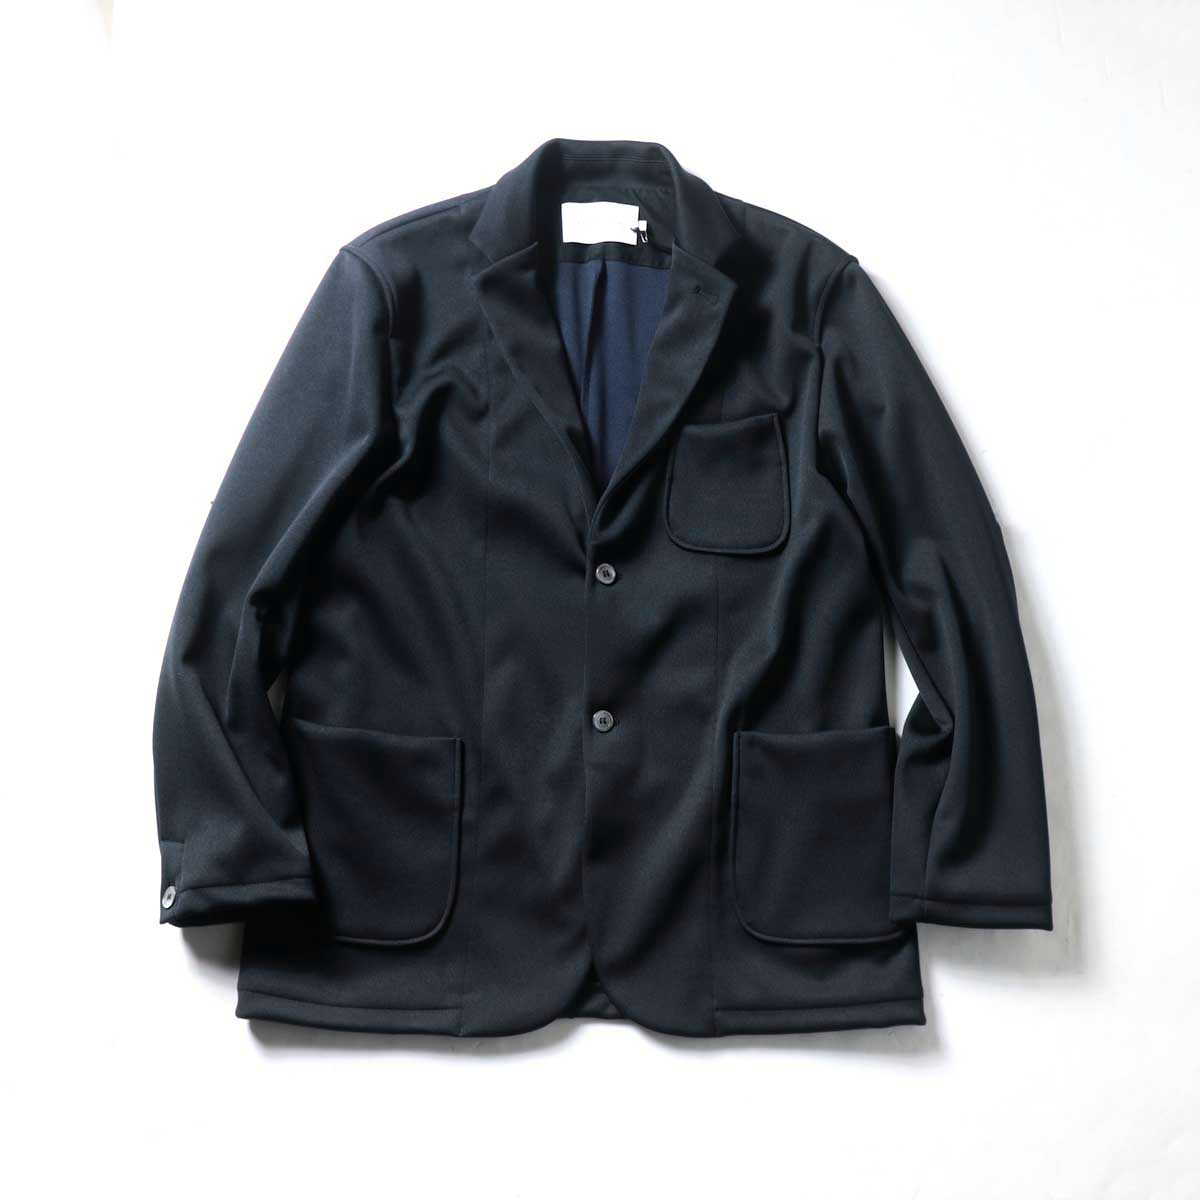 CURLY / TRACK JACKET (Black)正面